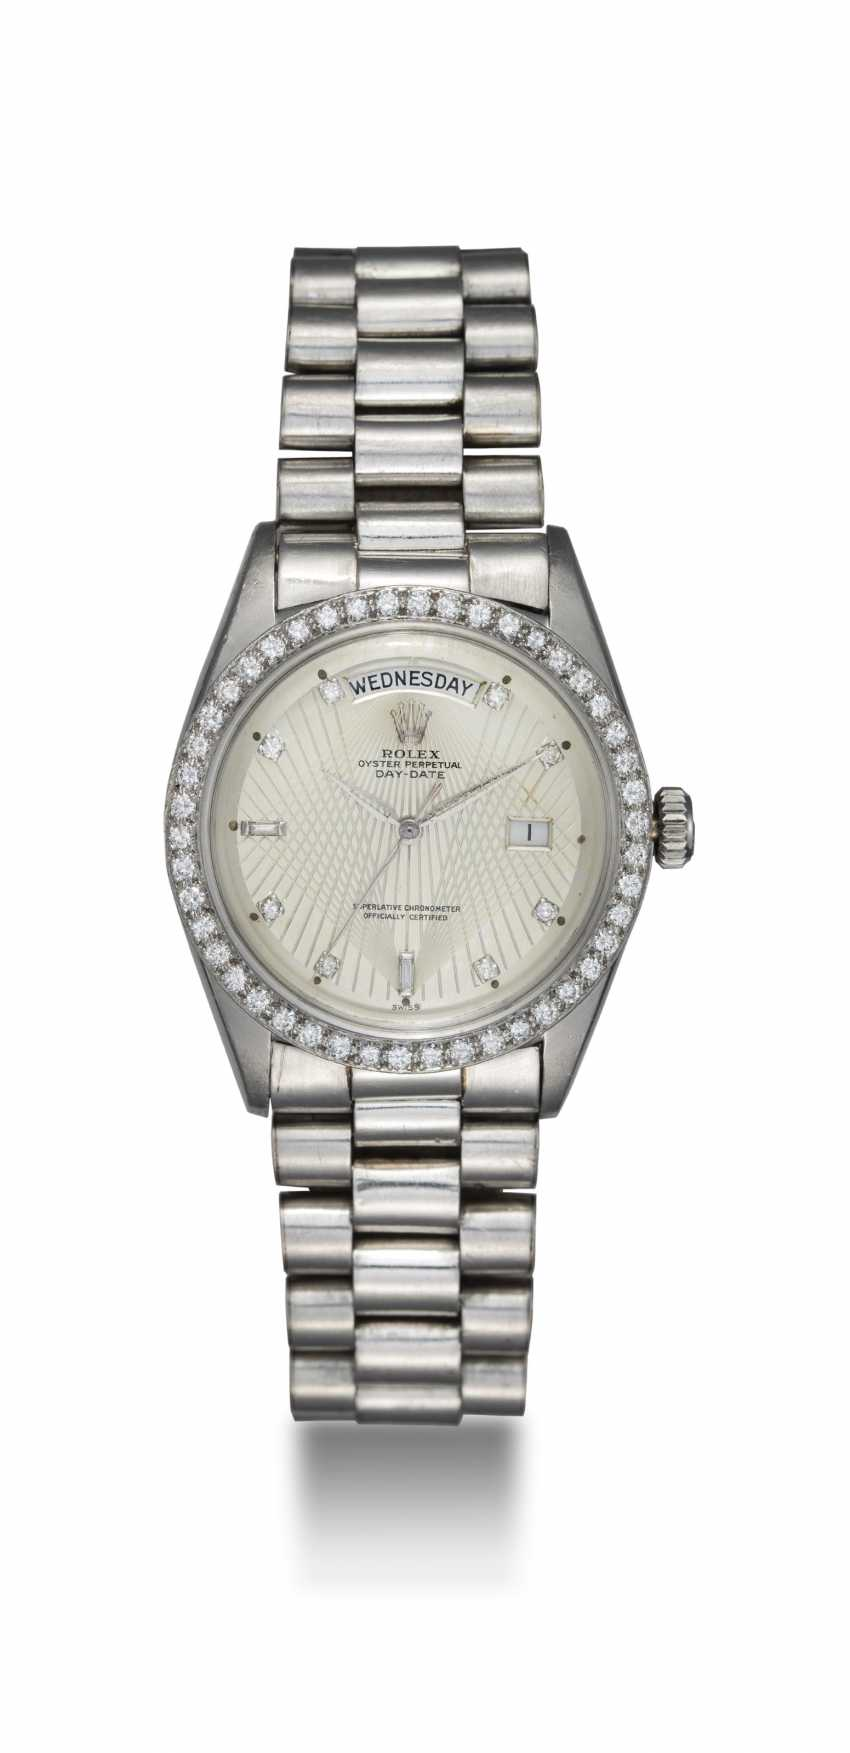 "ROLEX ""BROOKLYN BRIDGE"", A PLATINUM DIAMOND-SET OYSTER PERPETUAL DAY-DATE WITH AN ENGRAVED DIAL, REF. 1804 - photo 3"